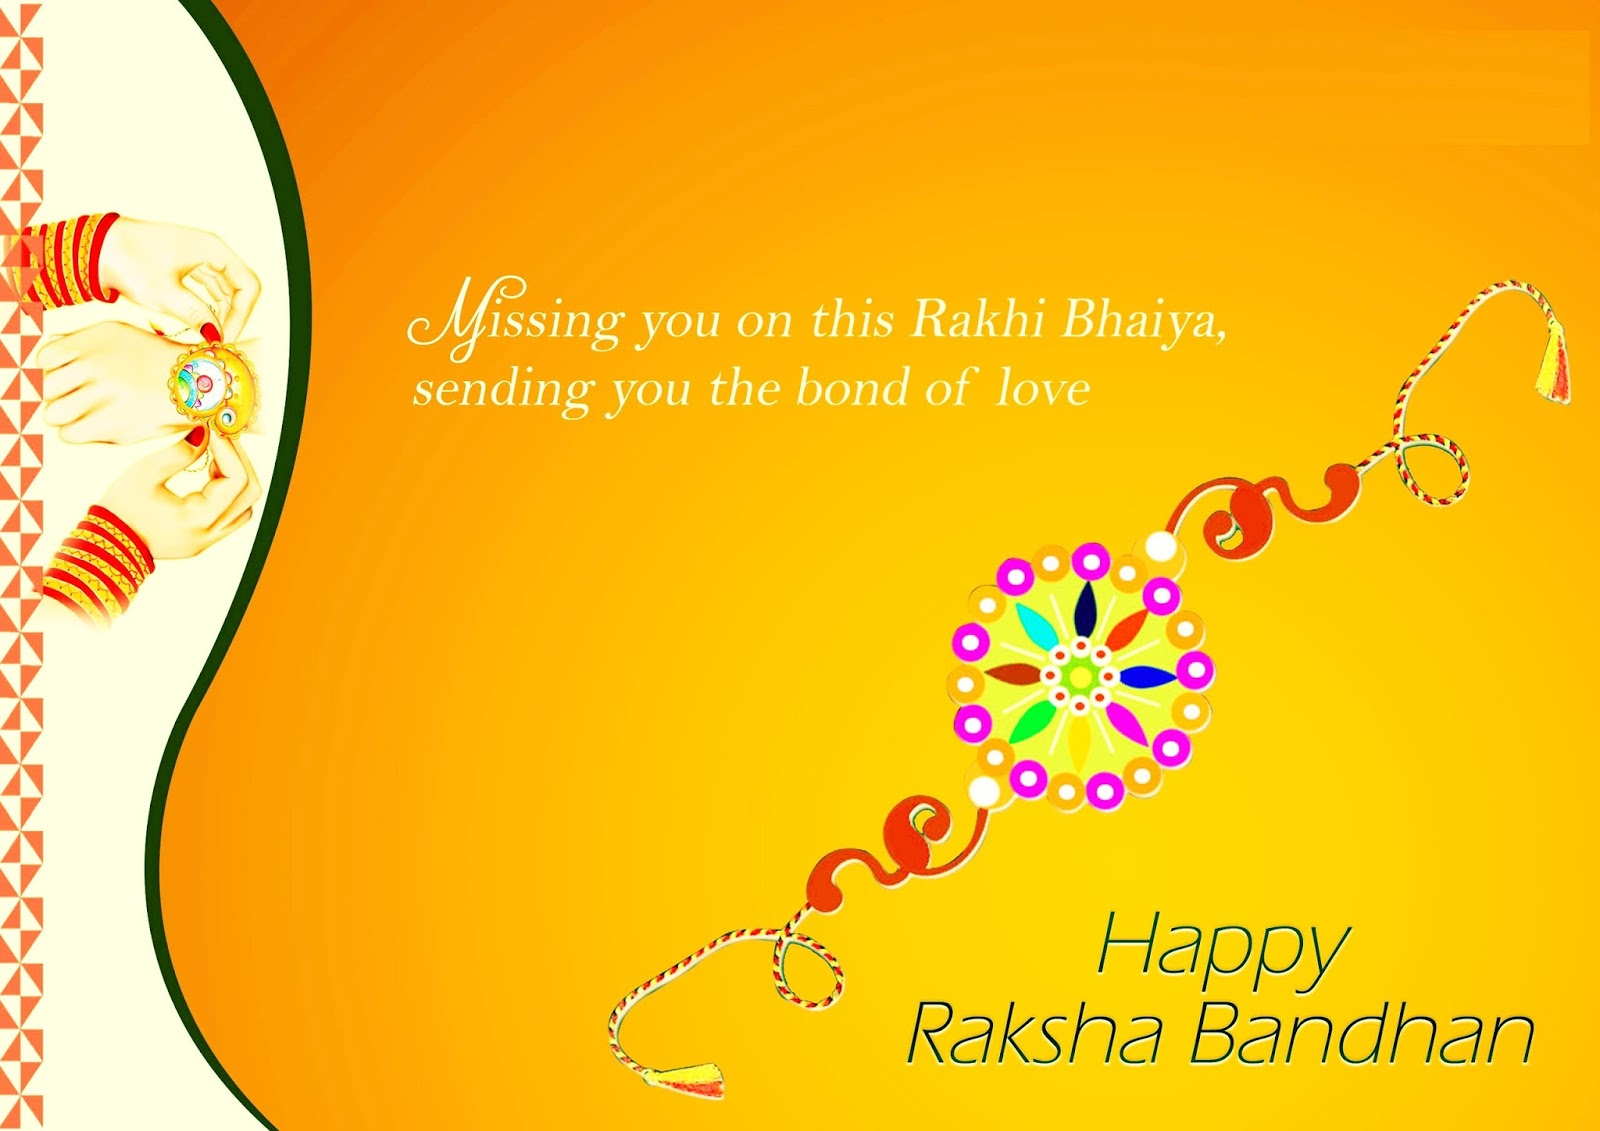 raksha bandhan funny essays language hindi All festival, day wishes, funny, sad and love  rakhi festival short essay| raksha bandhan about 10 lines  1 raksha bandhan is a well known festival of india.